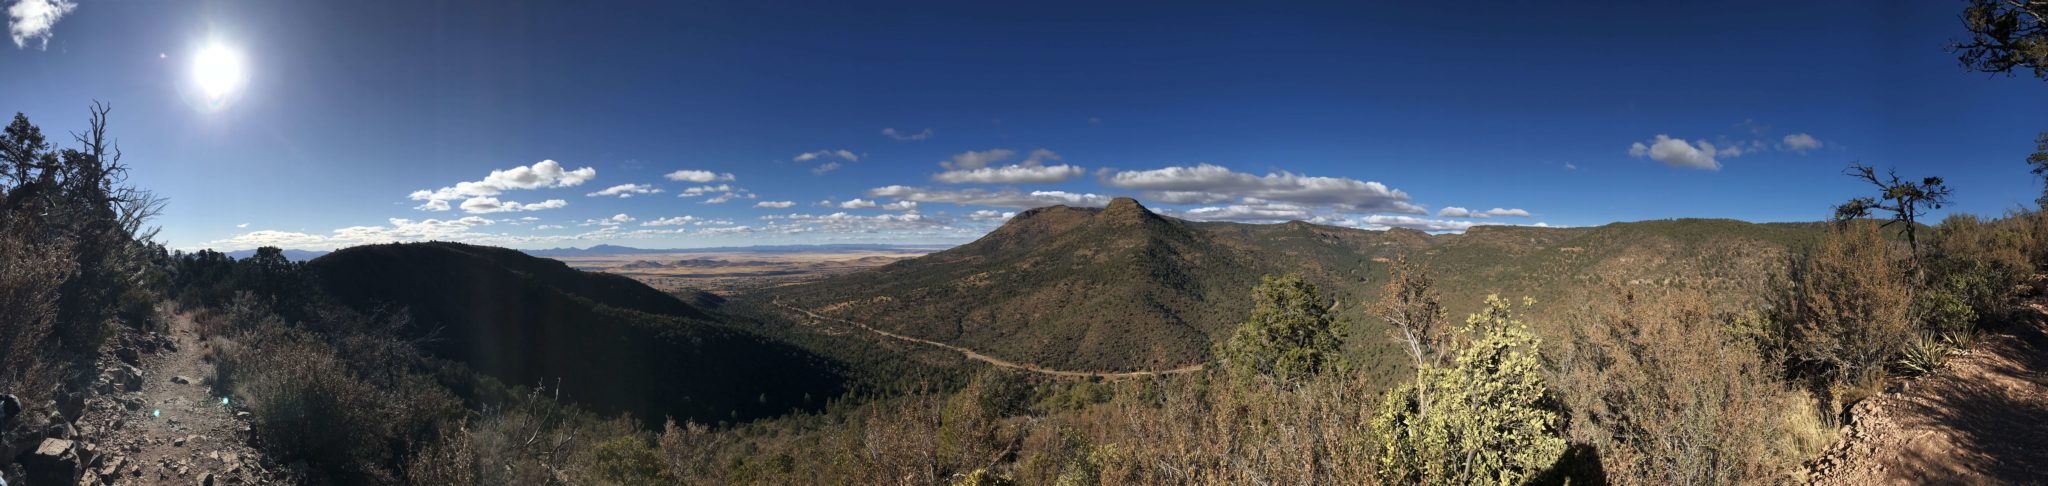 pano on the trail